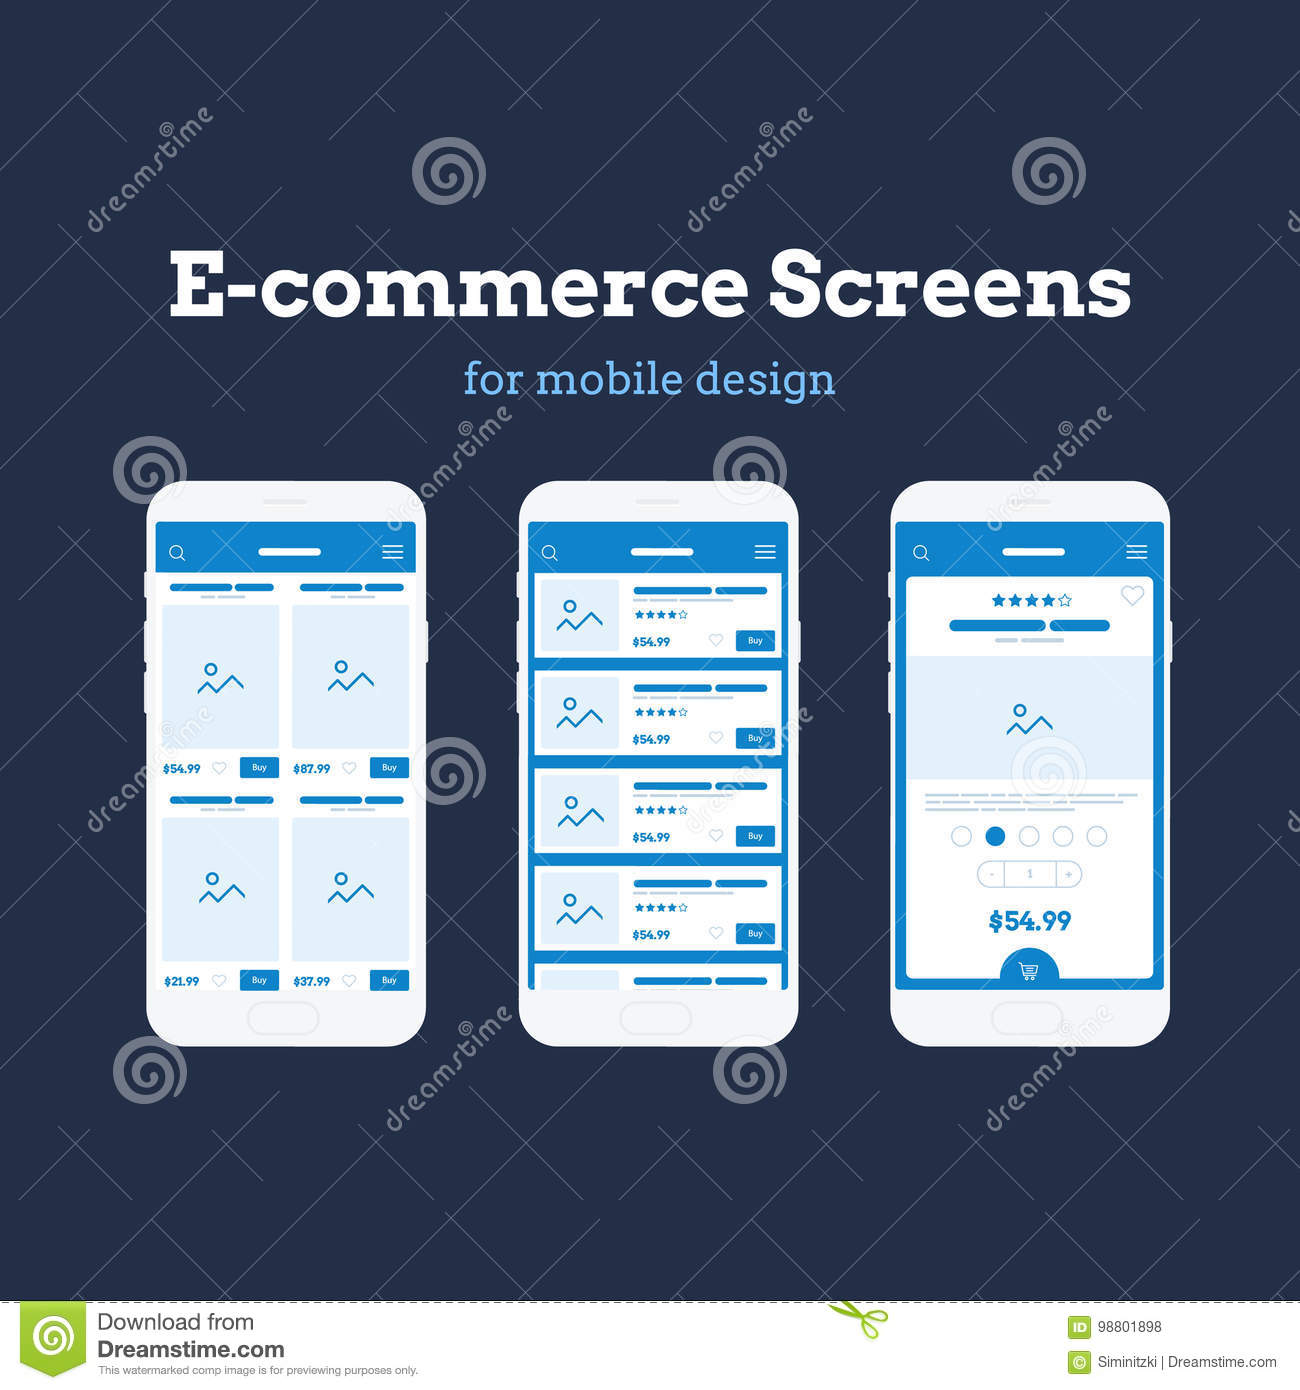 Mobile App Wireframe Ui Kit  Detailed Wireframe For Quick